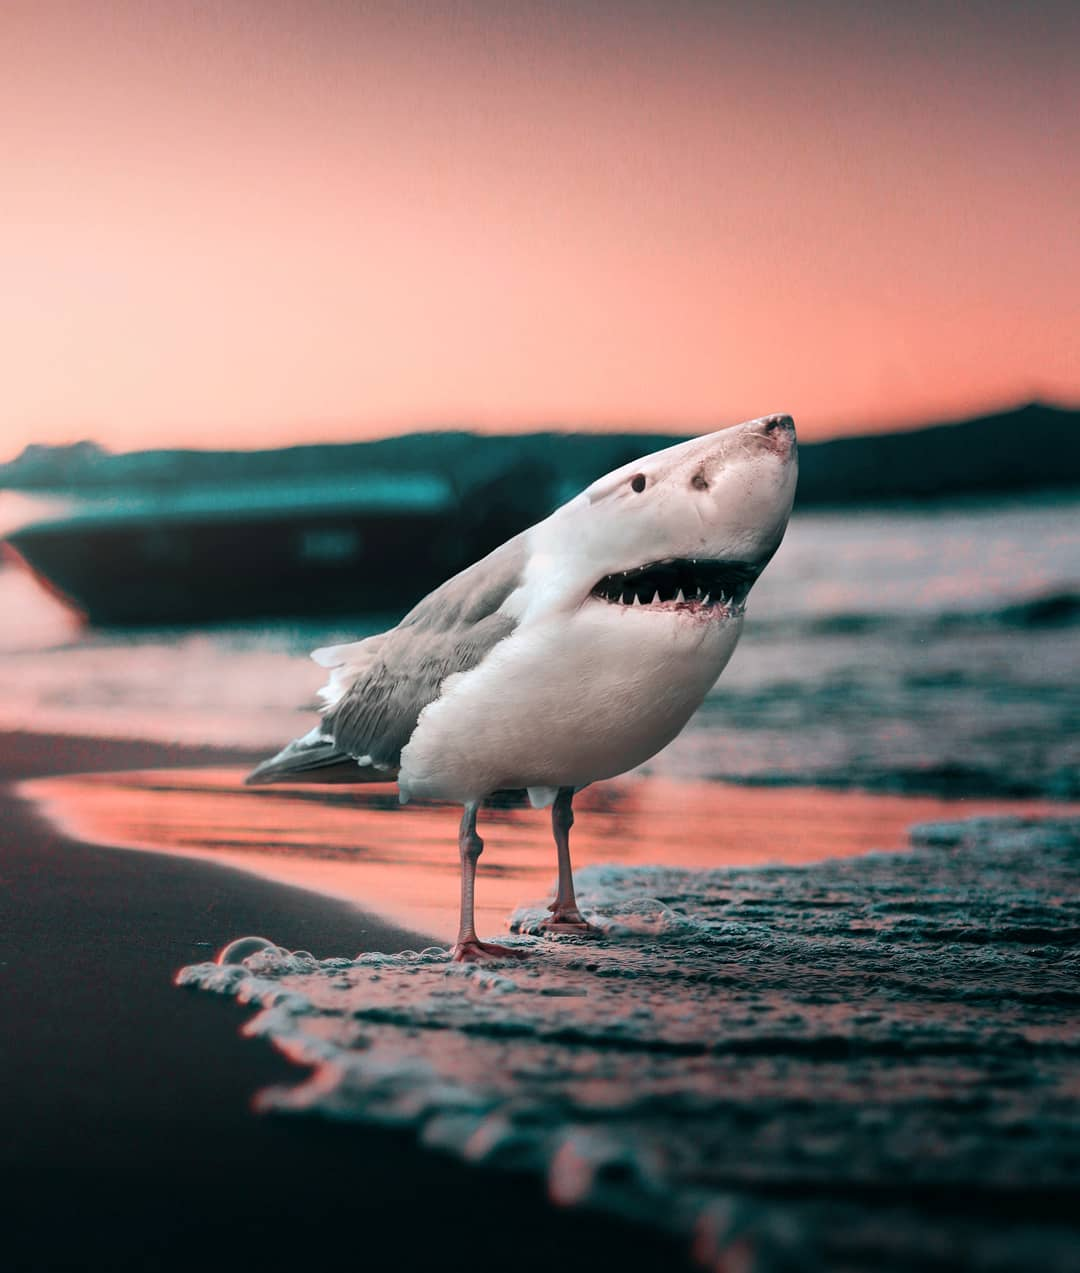 photomanipulation shark